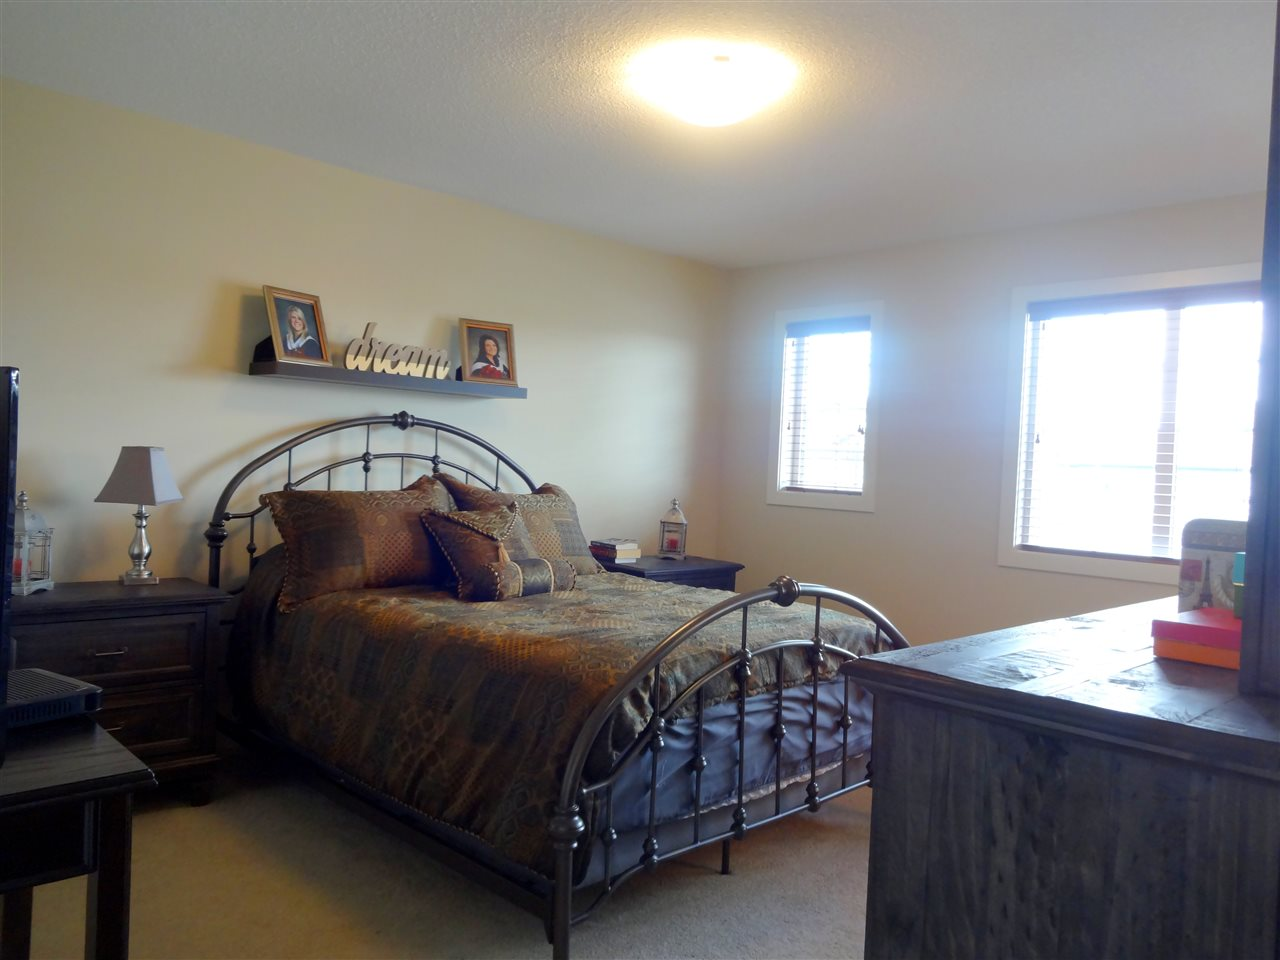 Very spacious Master Bedroom with abundance of room to accommodate big furniture pieces.